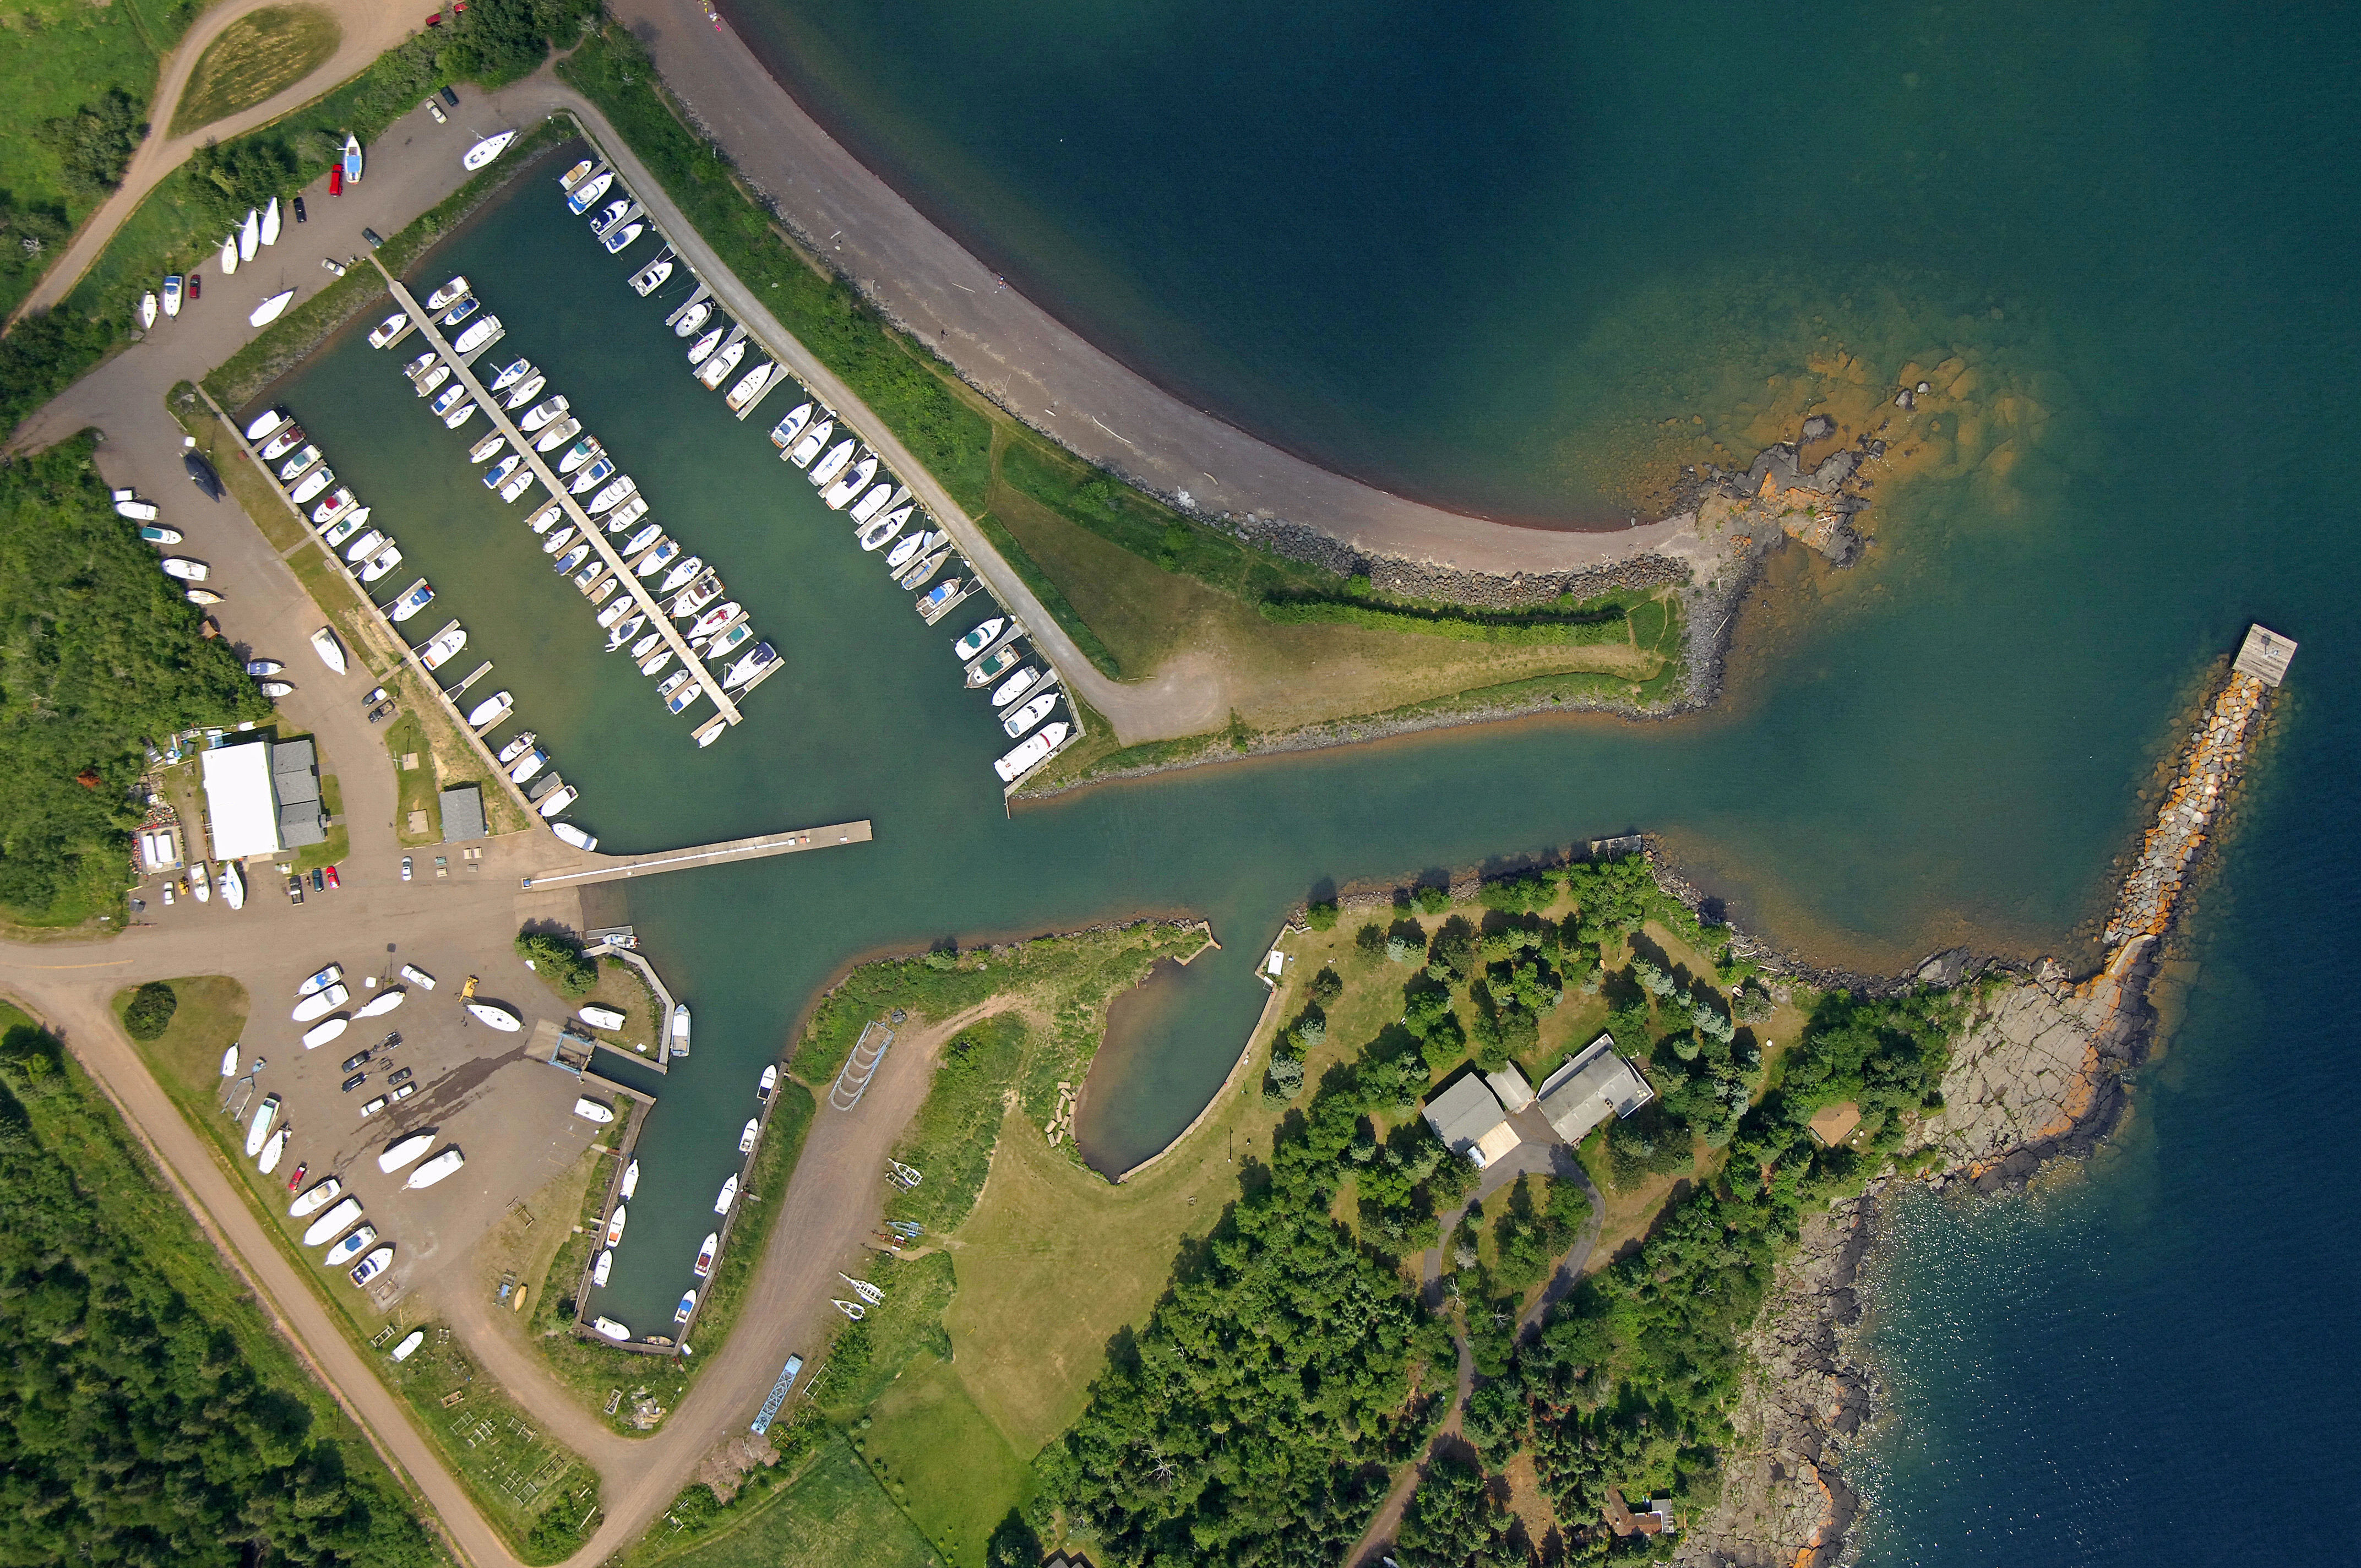 Knife River Marina in Knife River, MN, United States